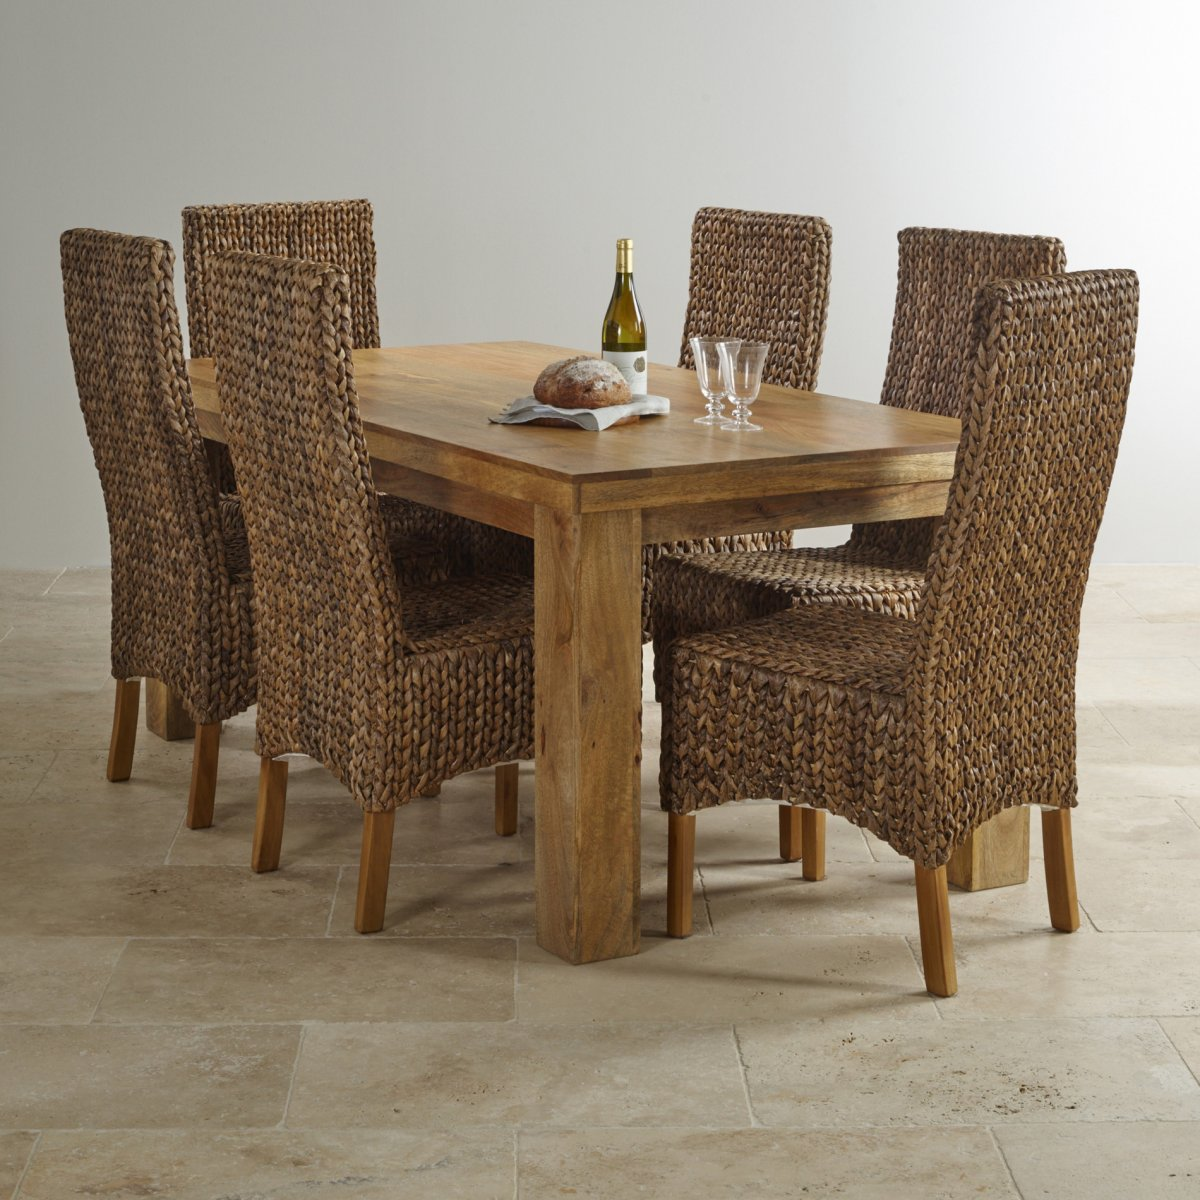 Mantis Light 5ft x 2ft 6quot Dining Table in Natural Solid Mango : mantis light natural solid mango 5ft x 2ft 6 dining table 55dc7c7618c69a4581f74769f12d9ee36081d4a6d4fae from www.oakfurnitureland.co.uk size 1200 x 1200 jpeg 239kB